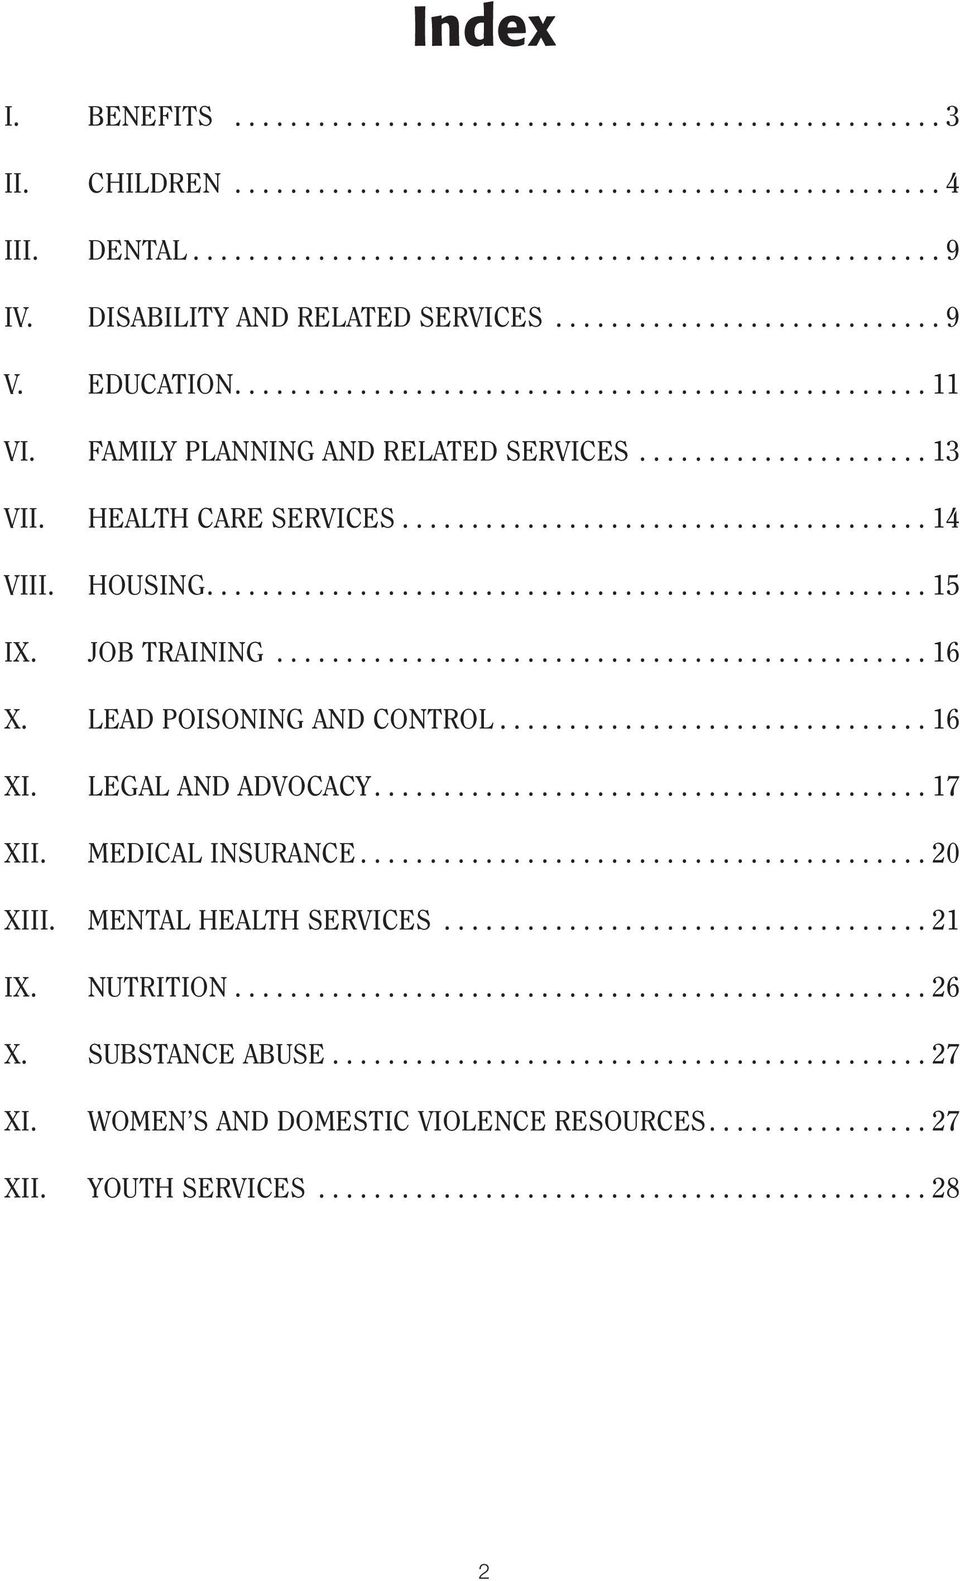 HEALTH CARE SERVICES...................................... 14 VIII. HOUSING.................................................... 15 IX. JOB TRAINING............................................... 16 X.